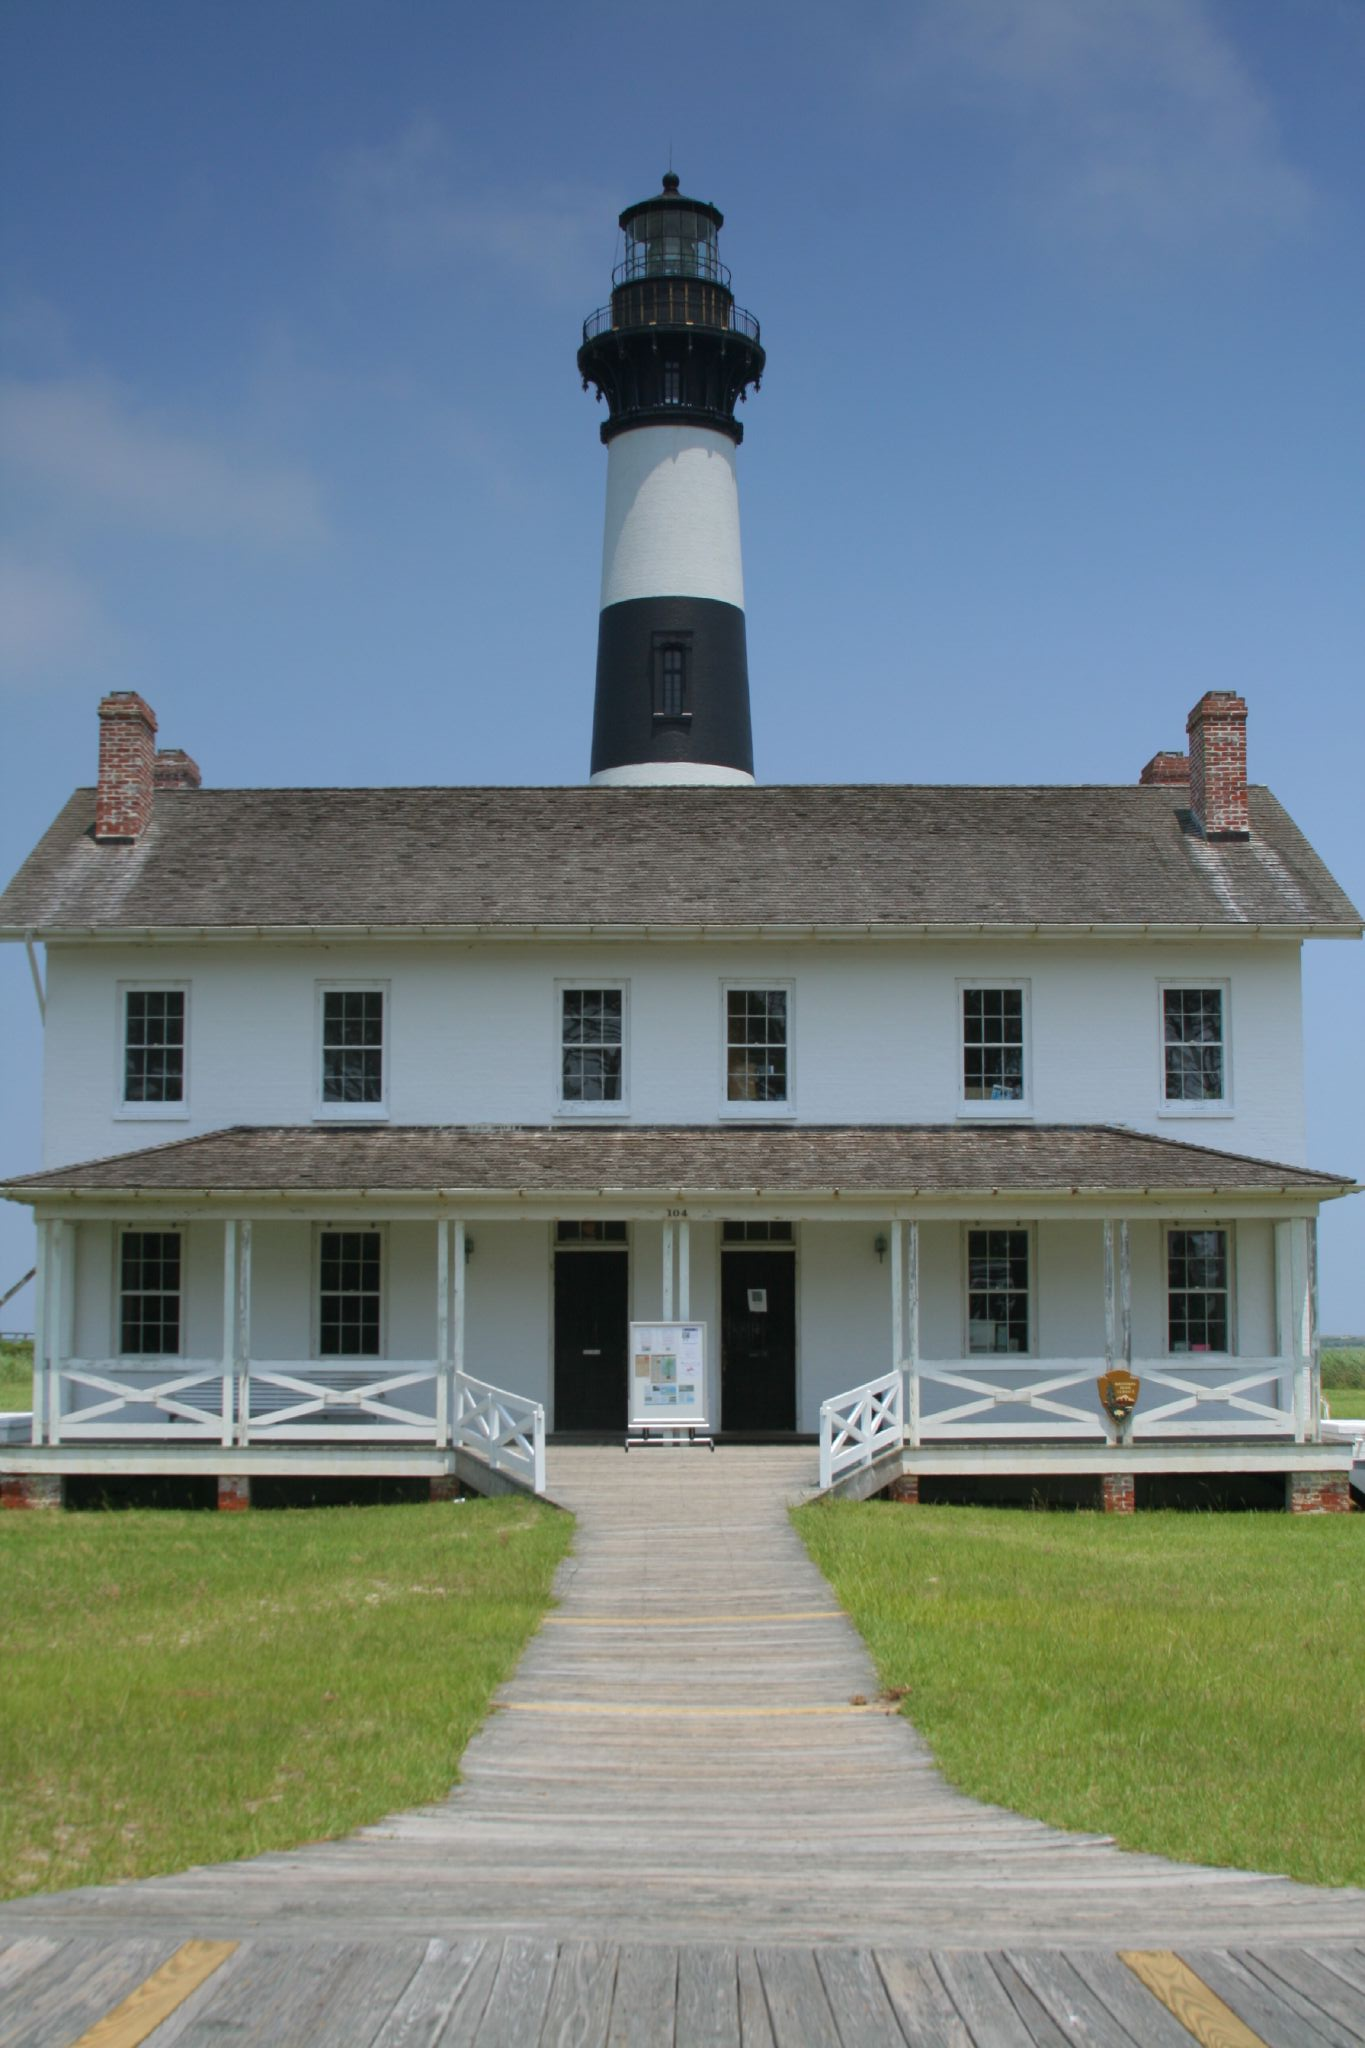 Ficheiro:Bodie Island Lighthouse and keeper's quarters jpg